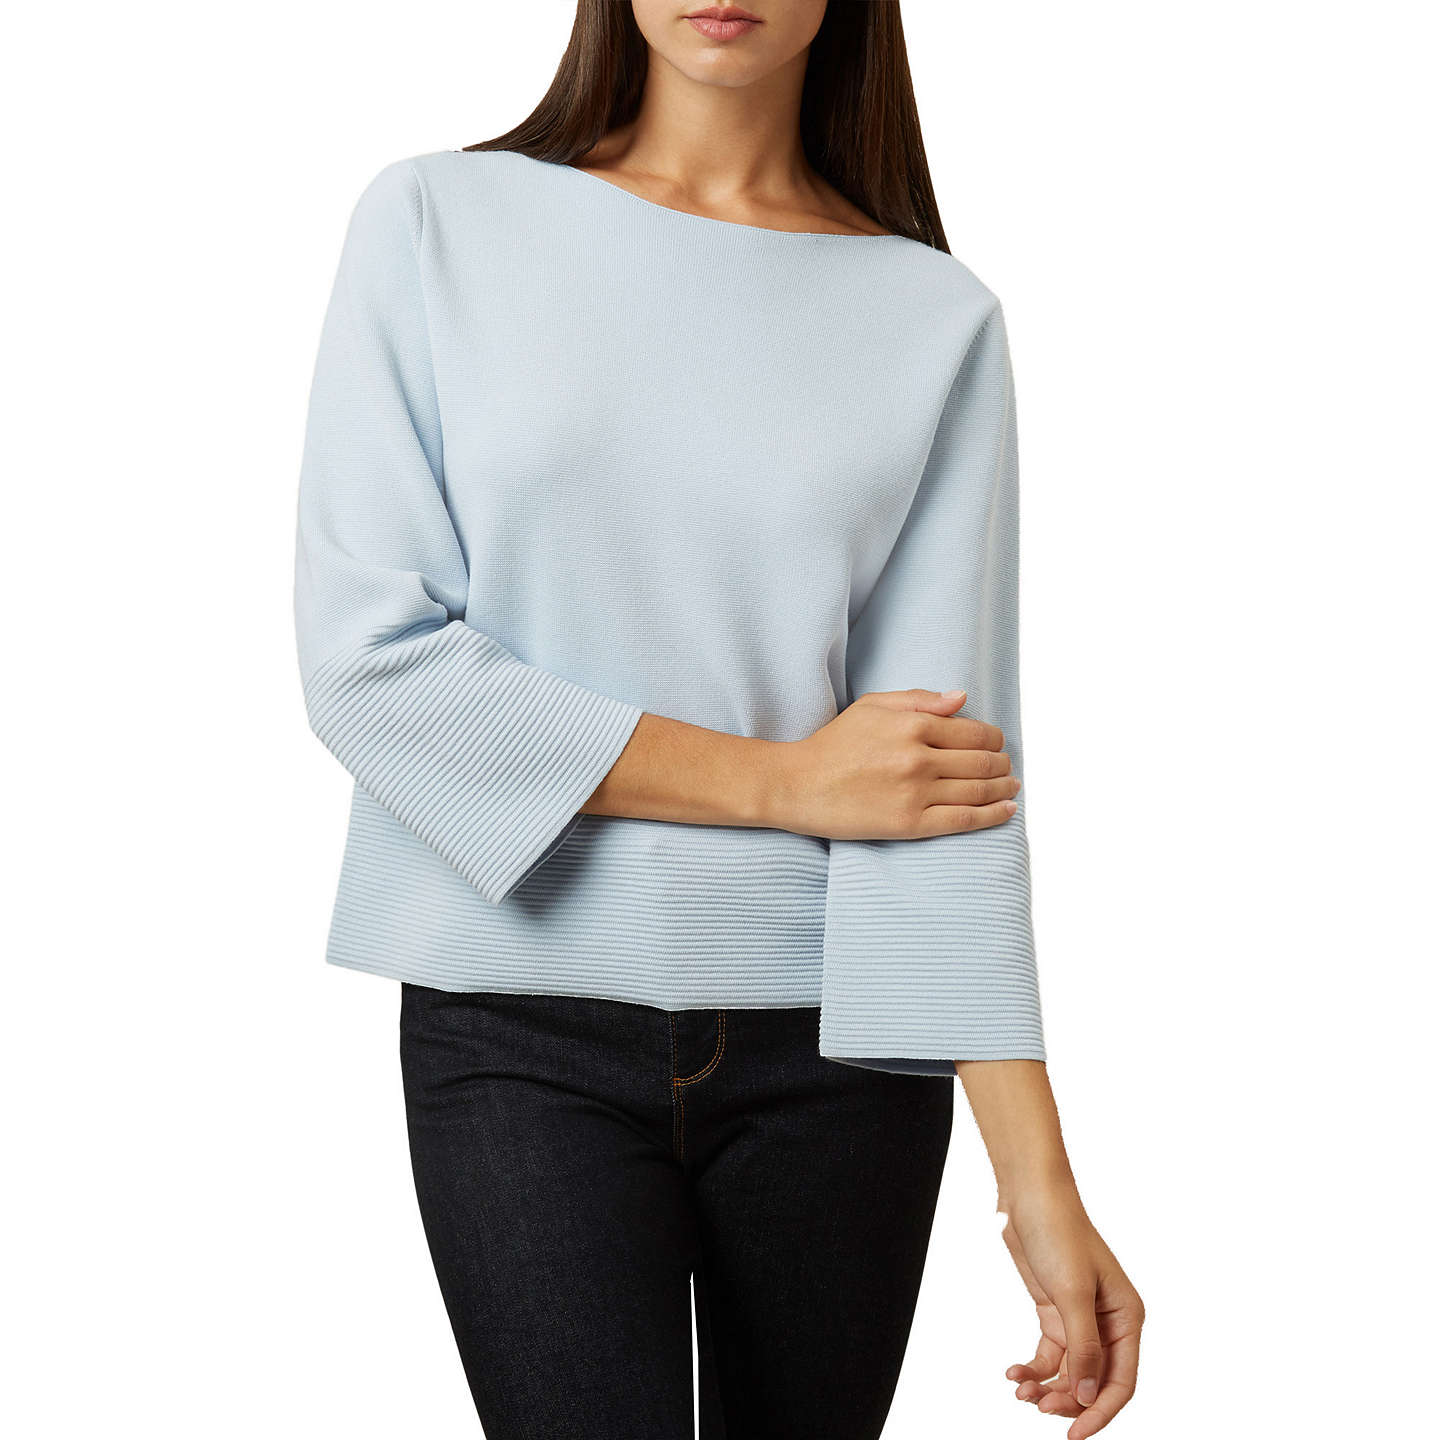 Hobbs Logan Boat Neck Flare Sleeve Jumper, Pale Blue at John Lewis